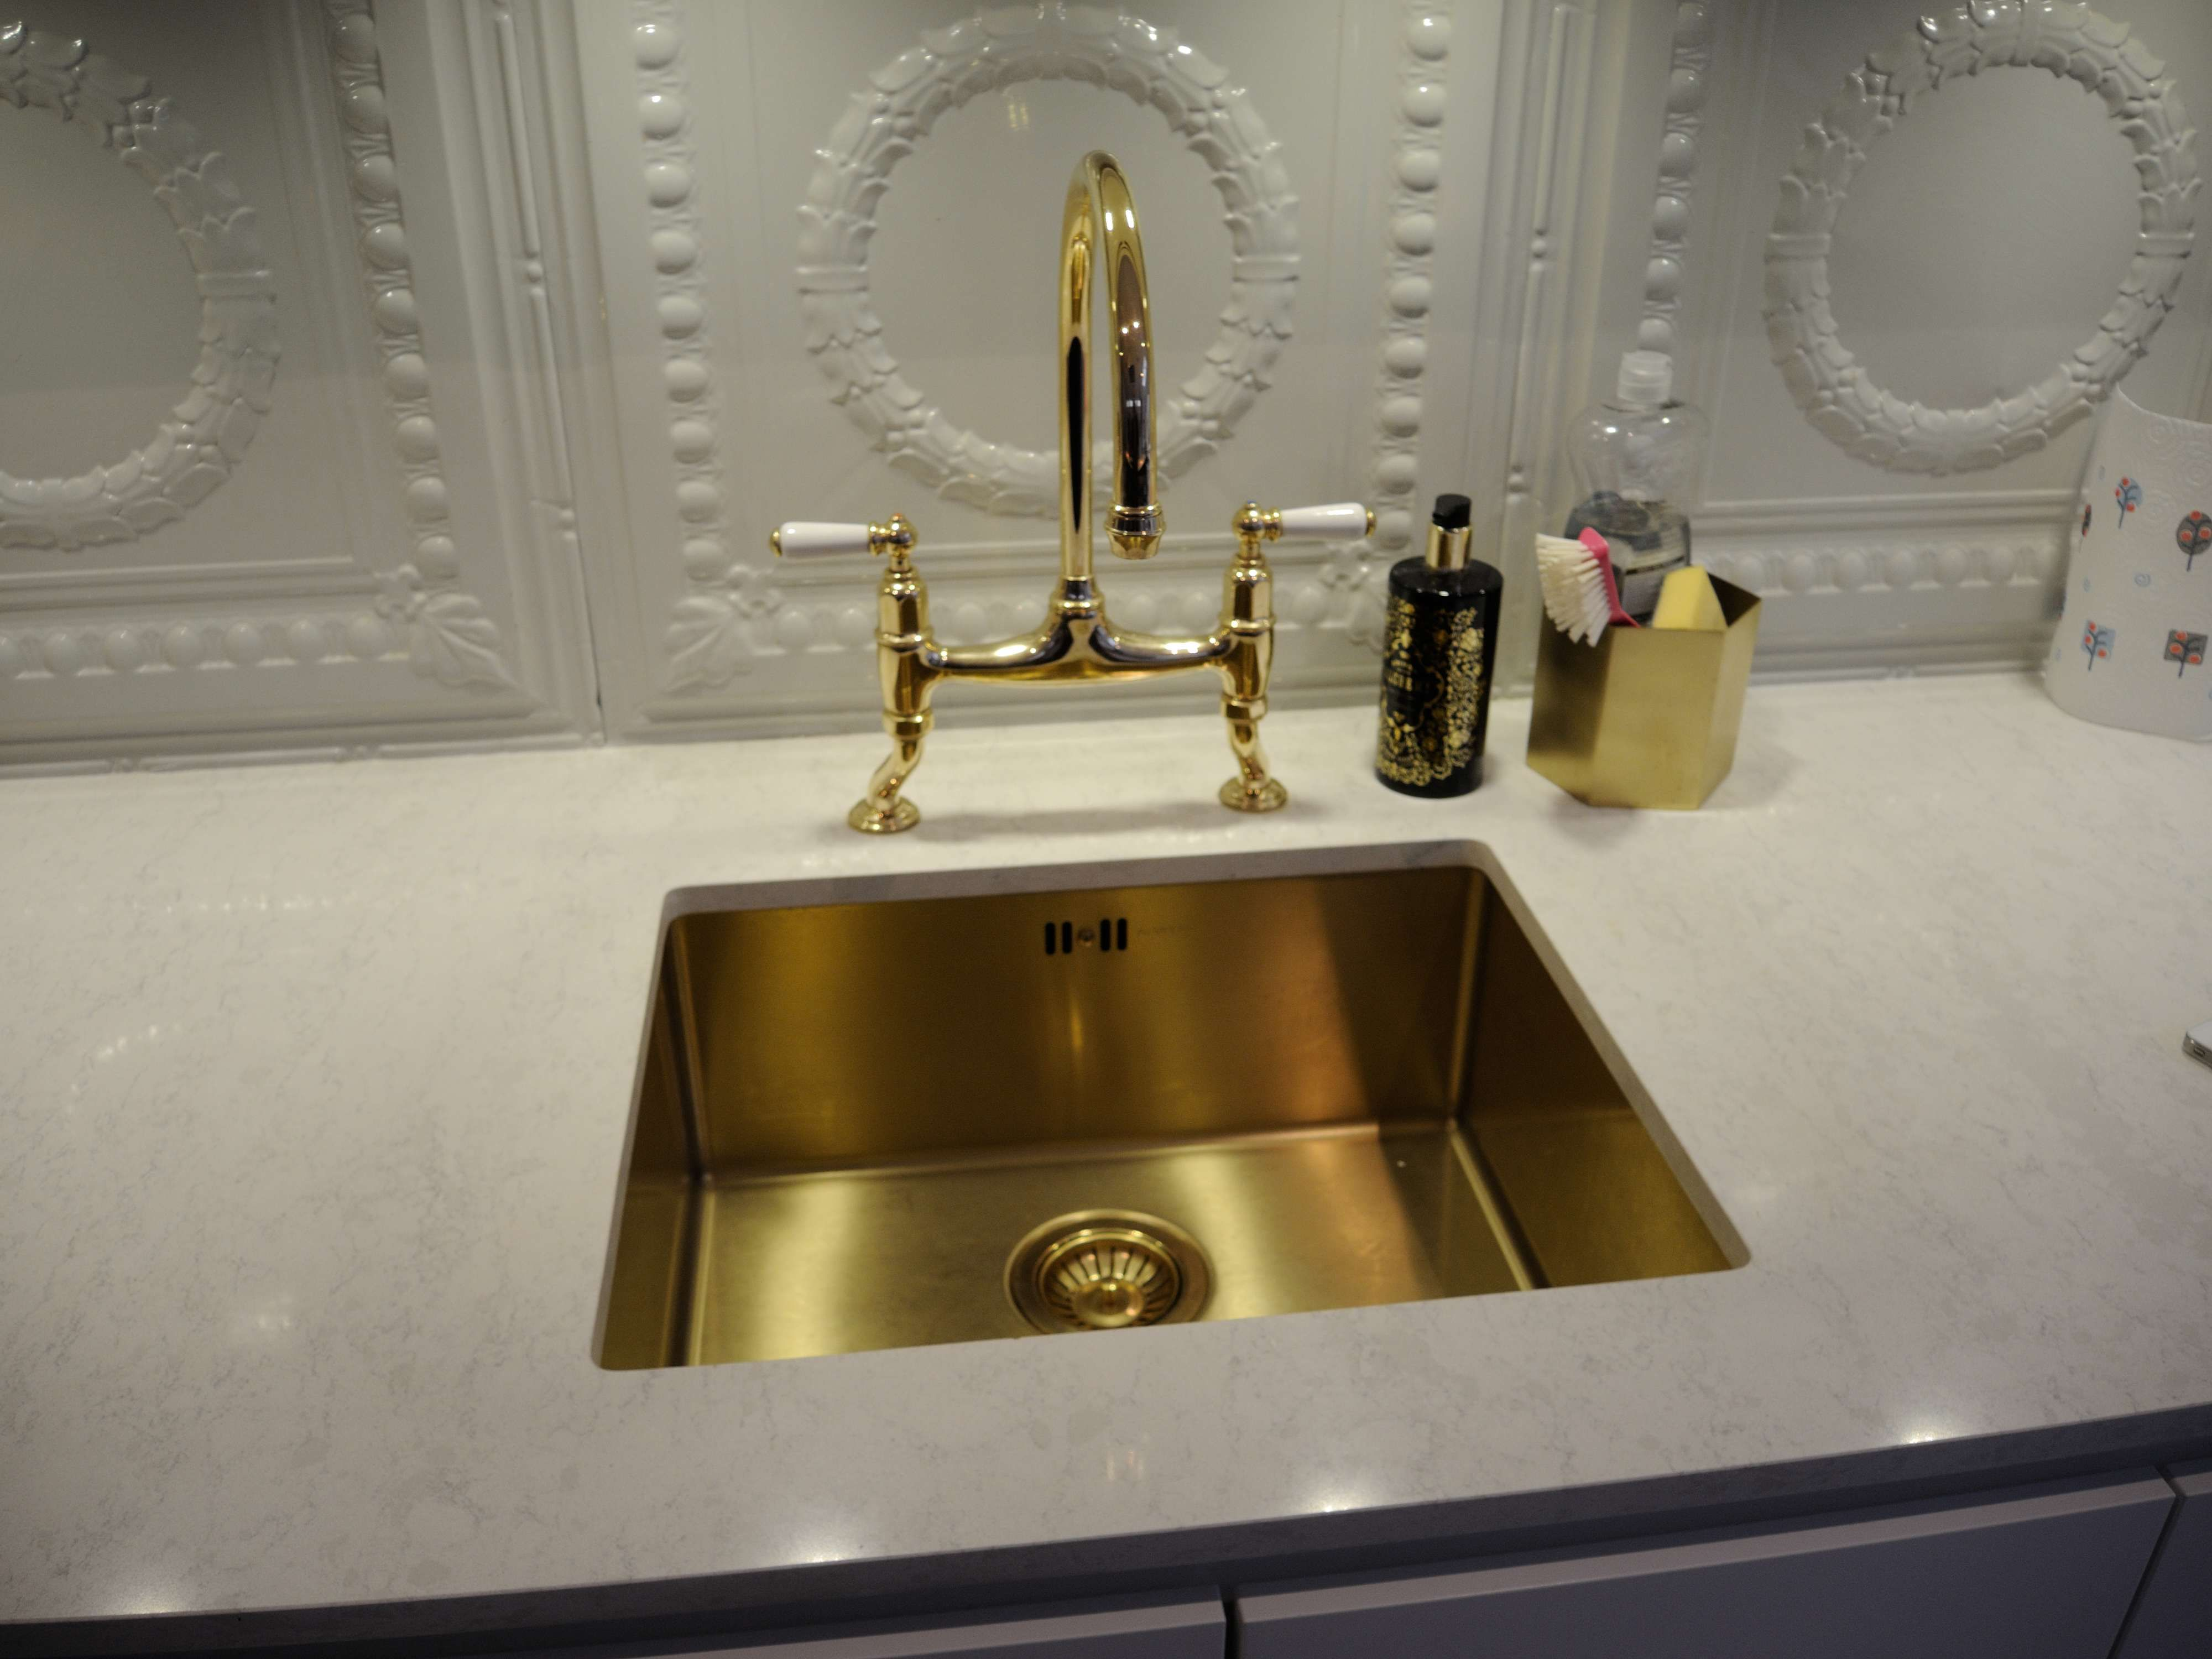 wall ount faucet widespread unlacquered bath home sinks brass double antique antiq lowes touchless and old vintage lever single fixtures black hole of mounted depot retro vessel faucets kingston full appliance contemporary style matte sink most bathroom size in modern beautiful